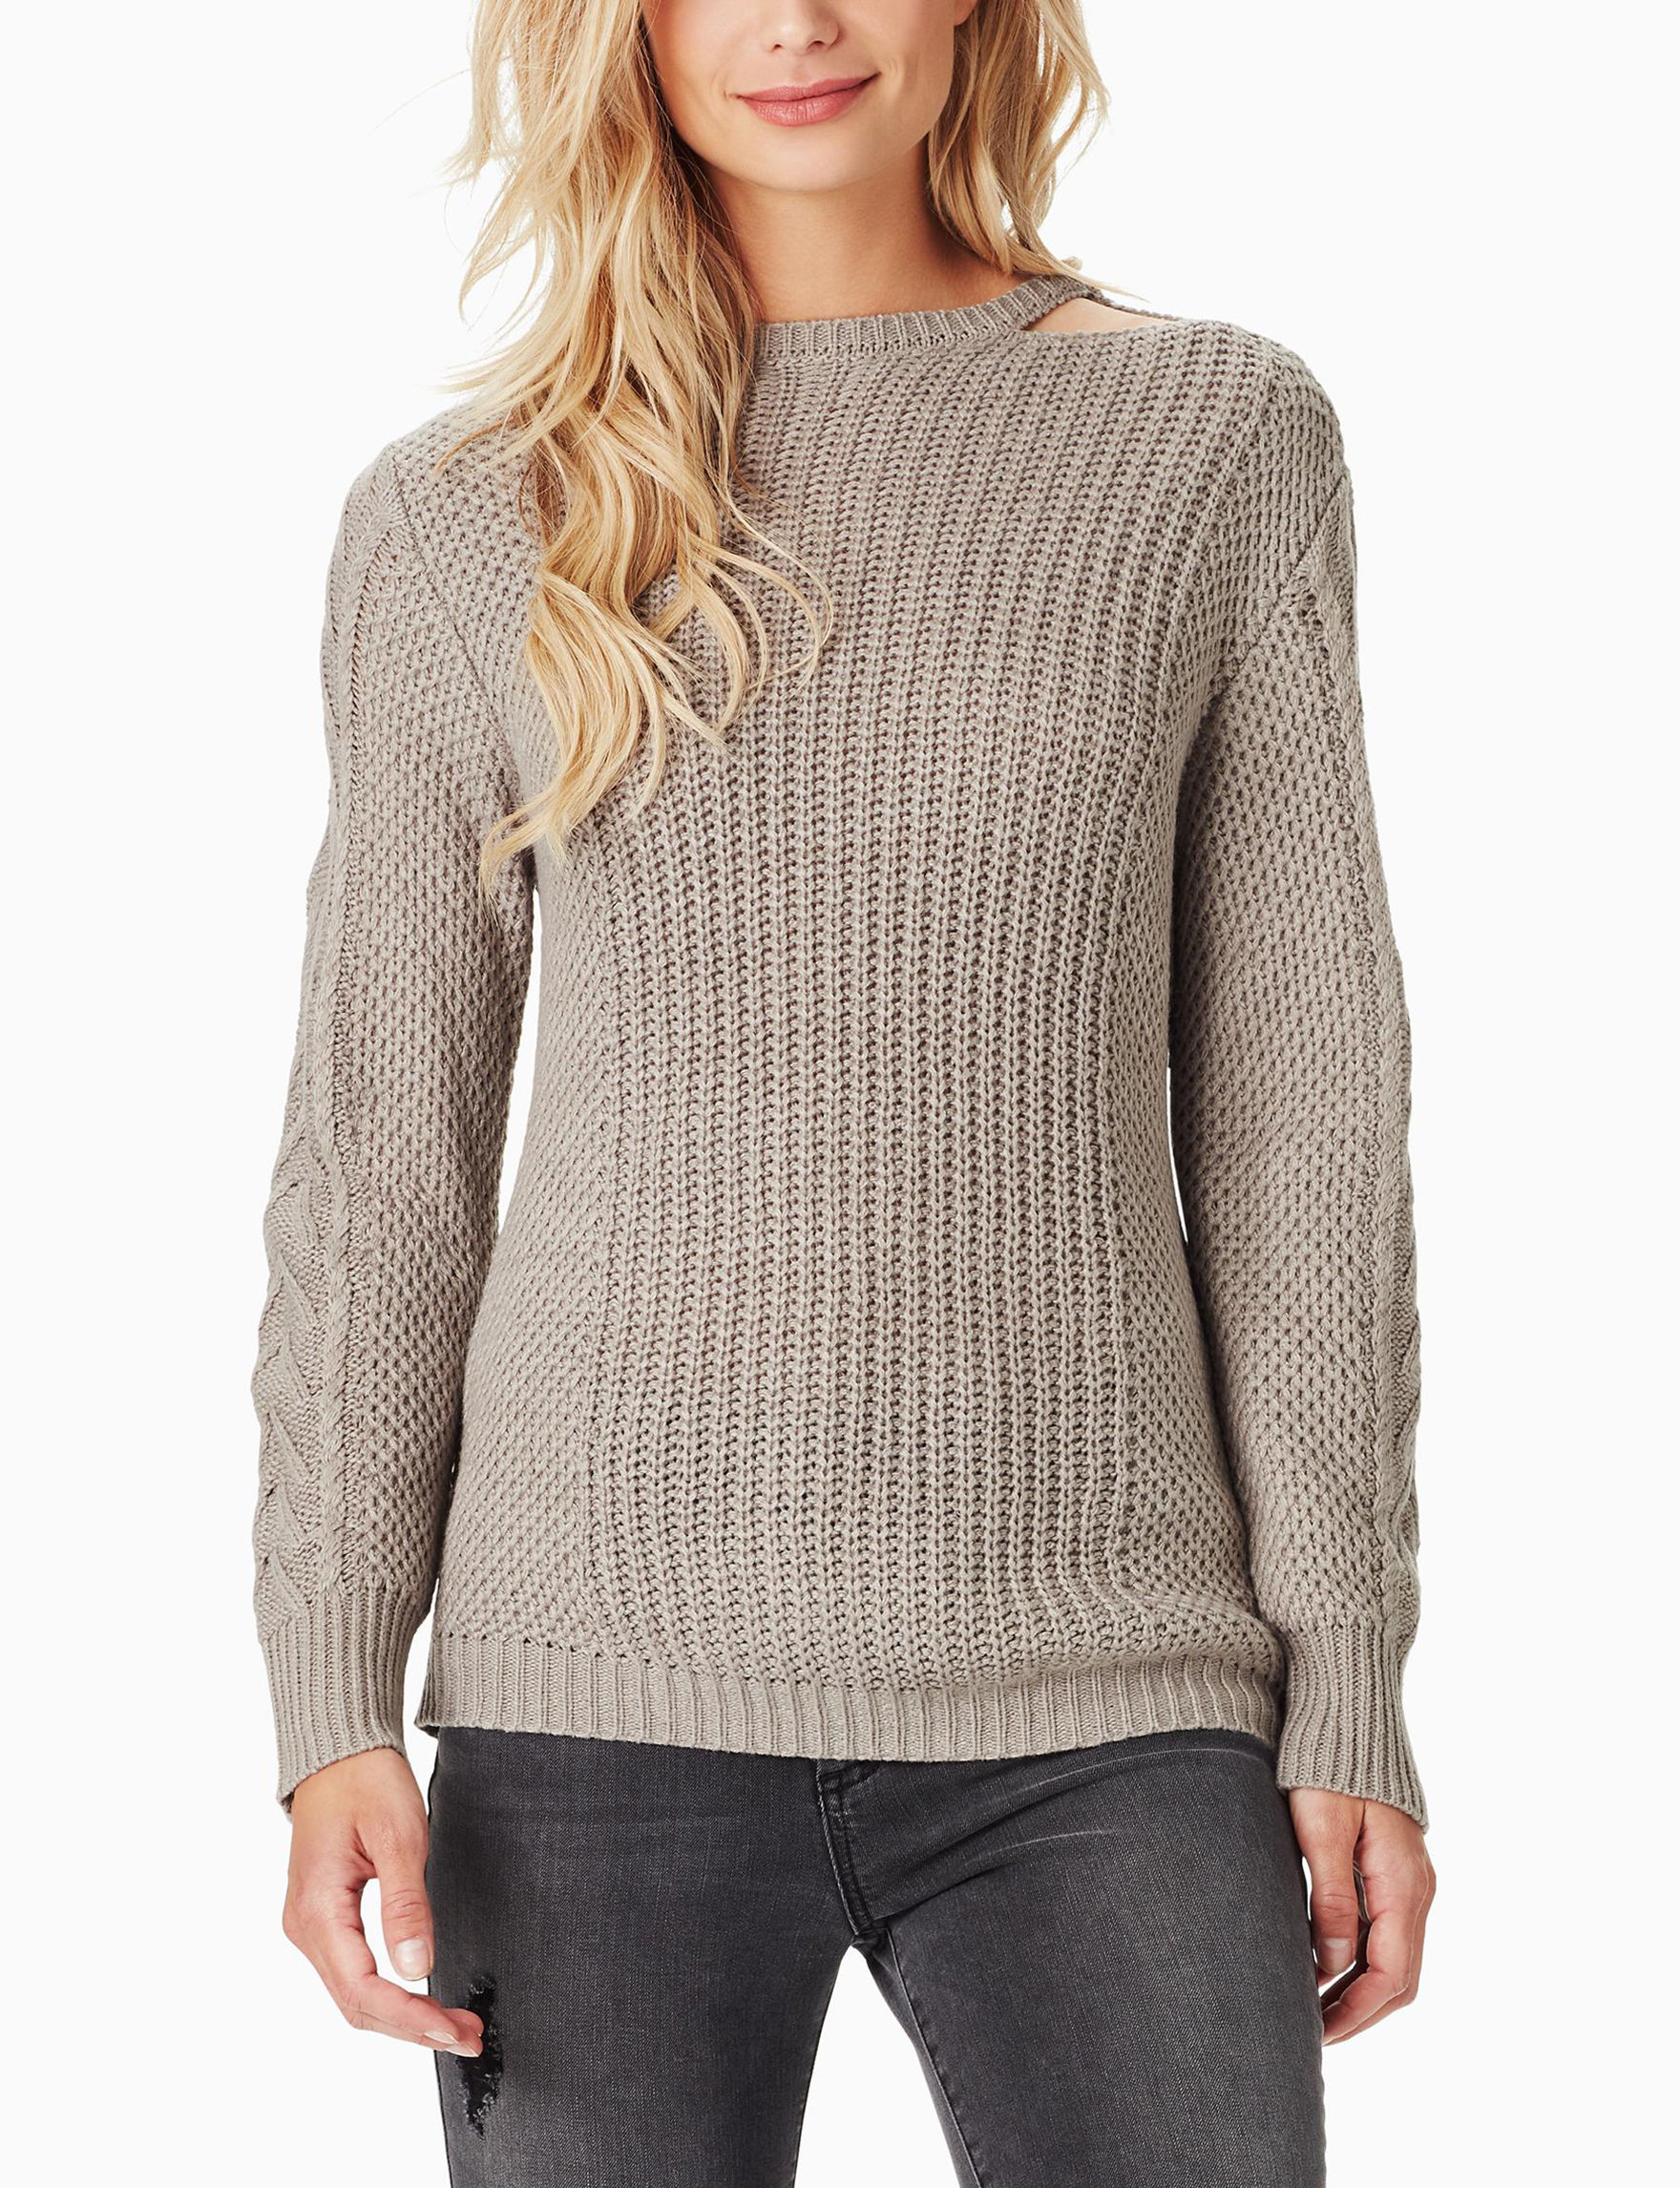 Jessica Simpson Heather Grey